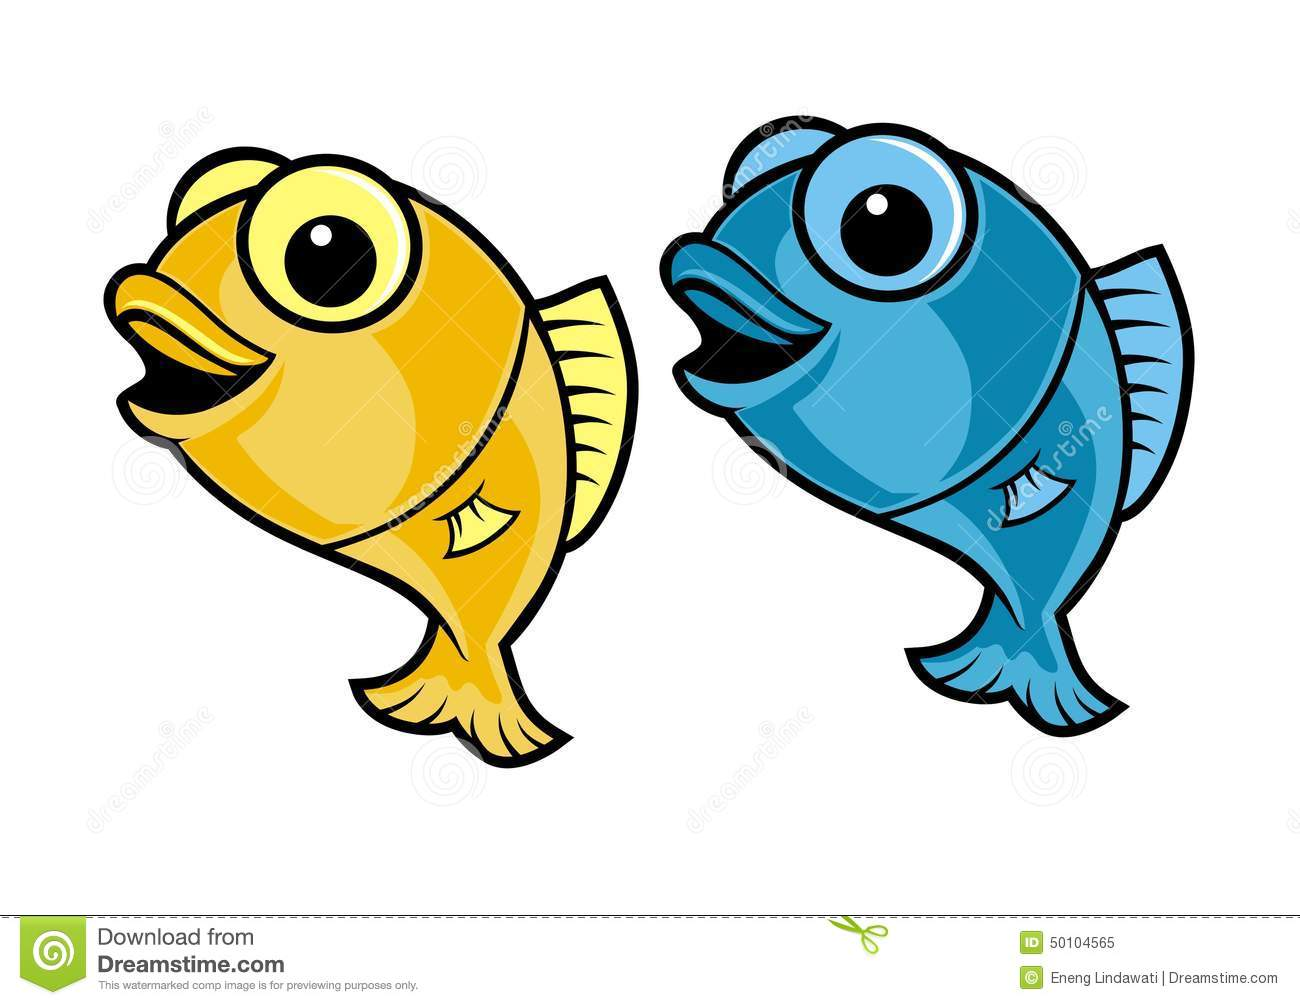 Parrot Fish Clipart at GetDrawings.com.